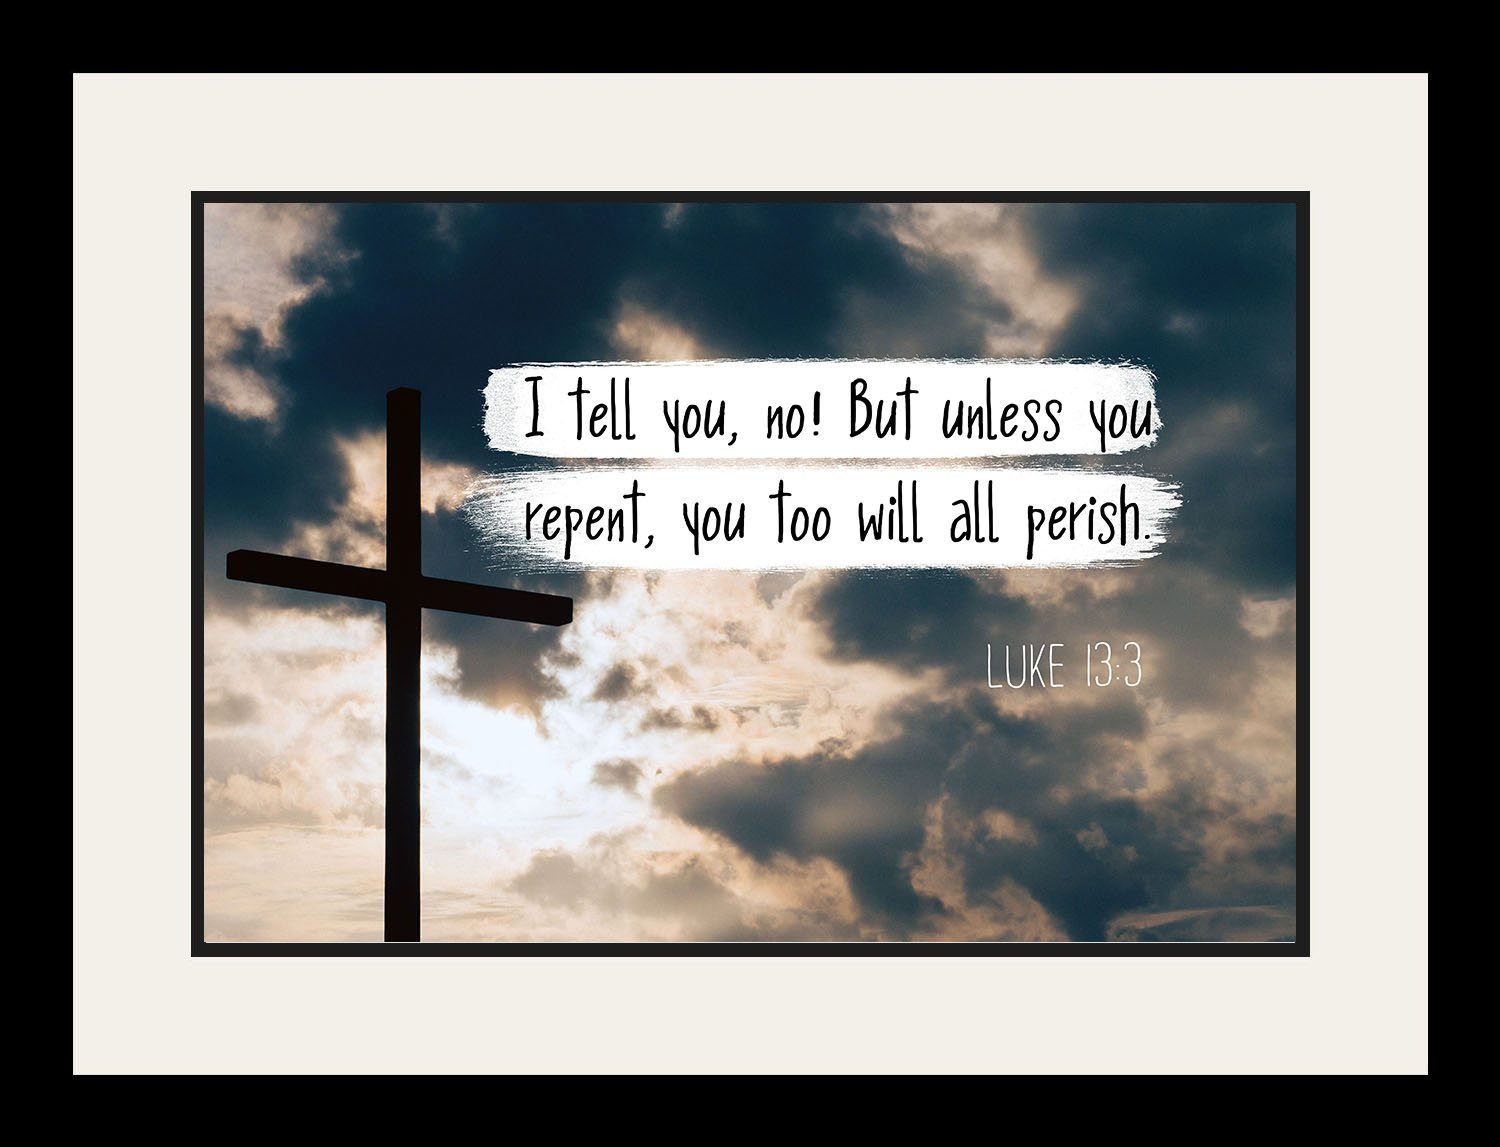 Luke 13:3 But unless you repent, - Christian Poster, Print, Picture or Framed Wall Art Decor - Bible Verse Collection - Religious Gift for Holidays Christmas Baptism (19x25 Framed)